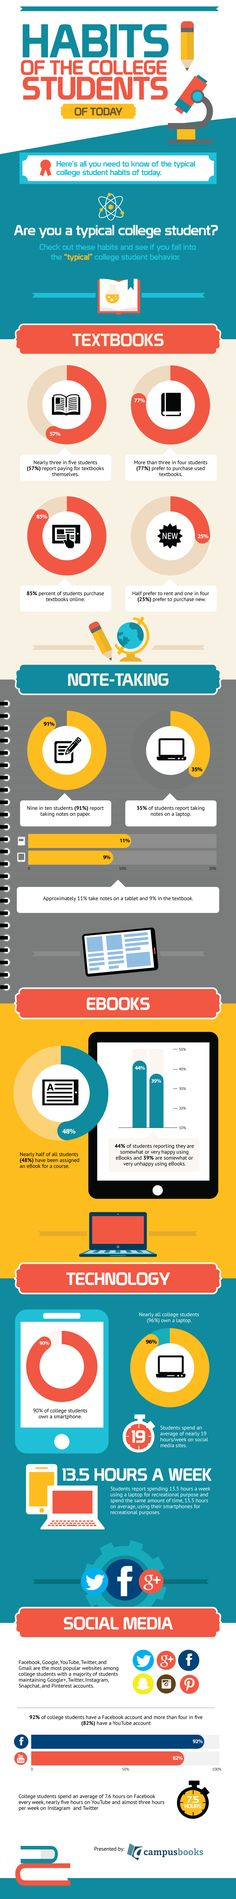 The Habits of Today's College Students Infographic - http://elearninginfographics.com/habits-todays-college-students-infographic/